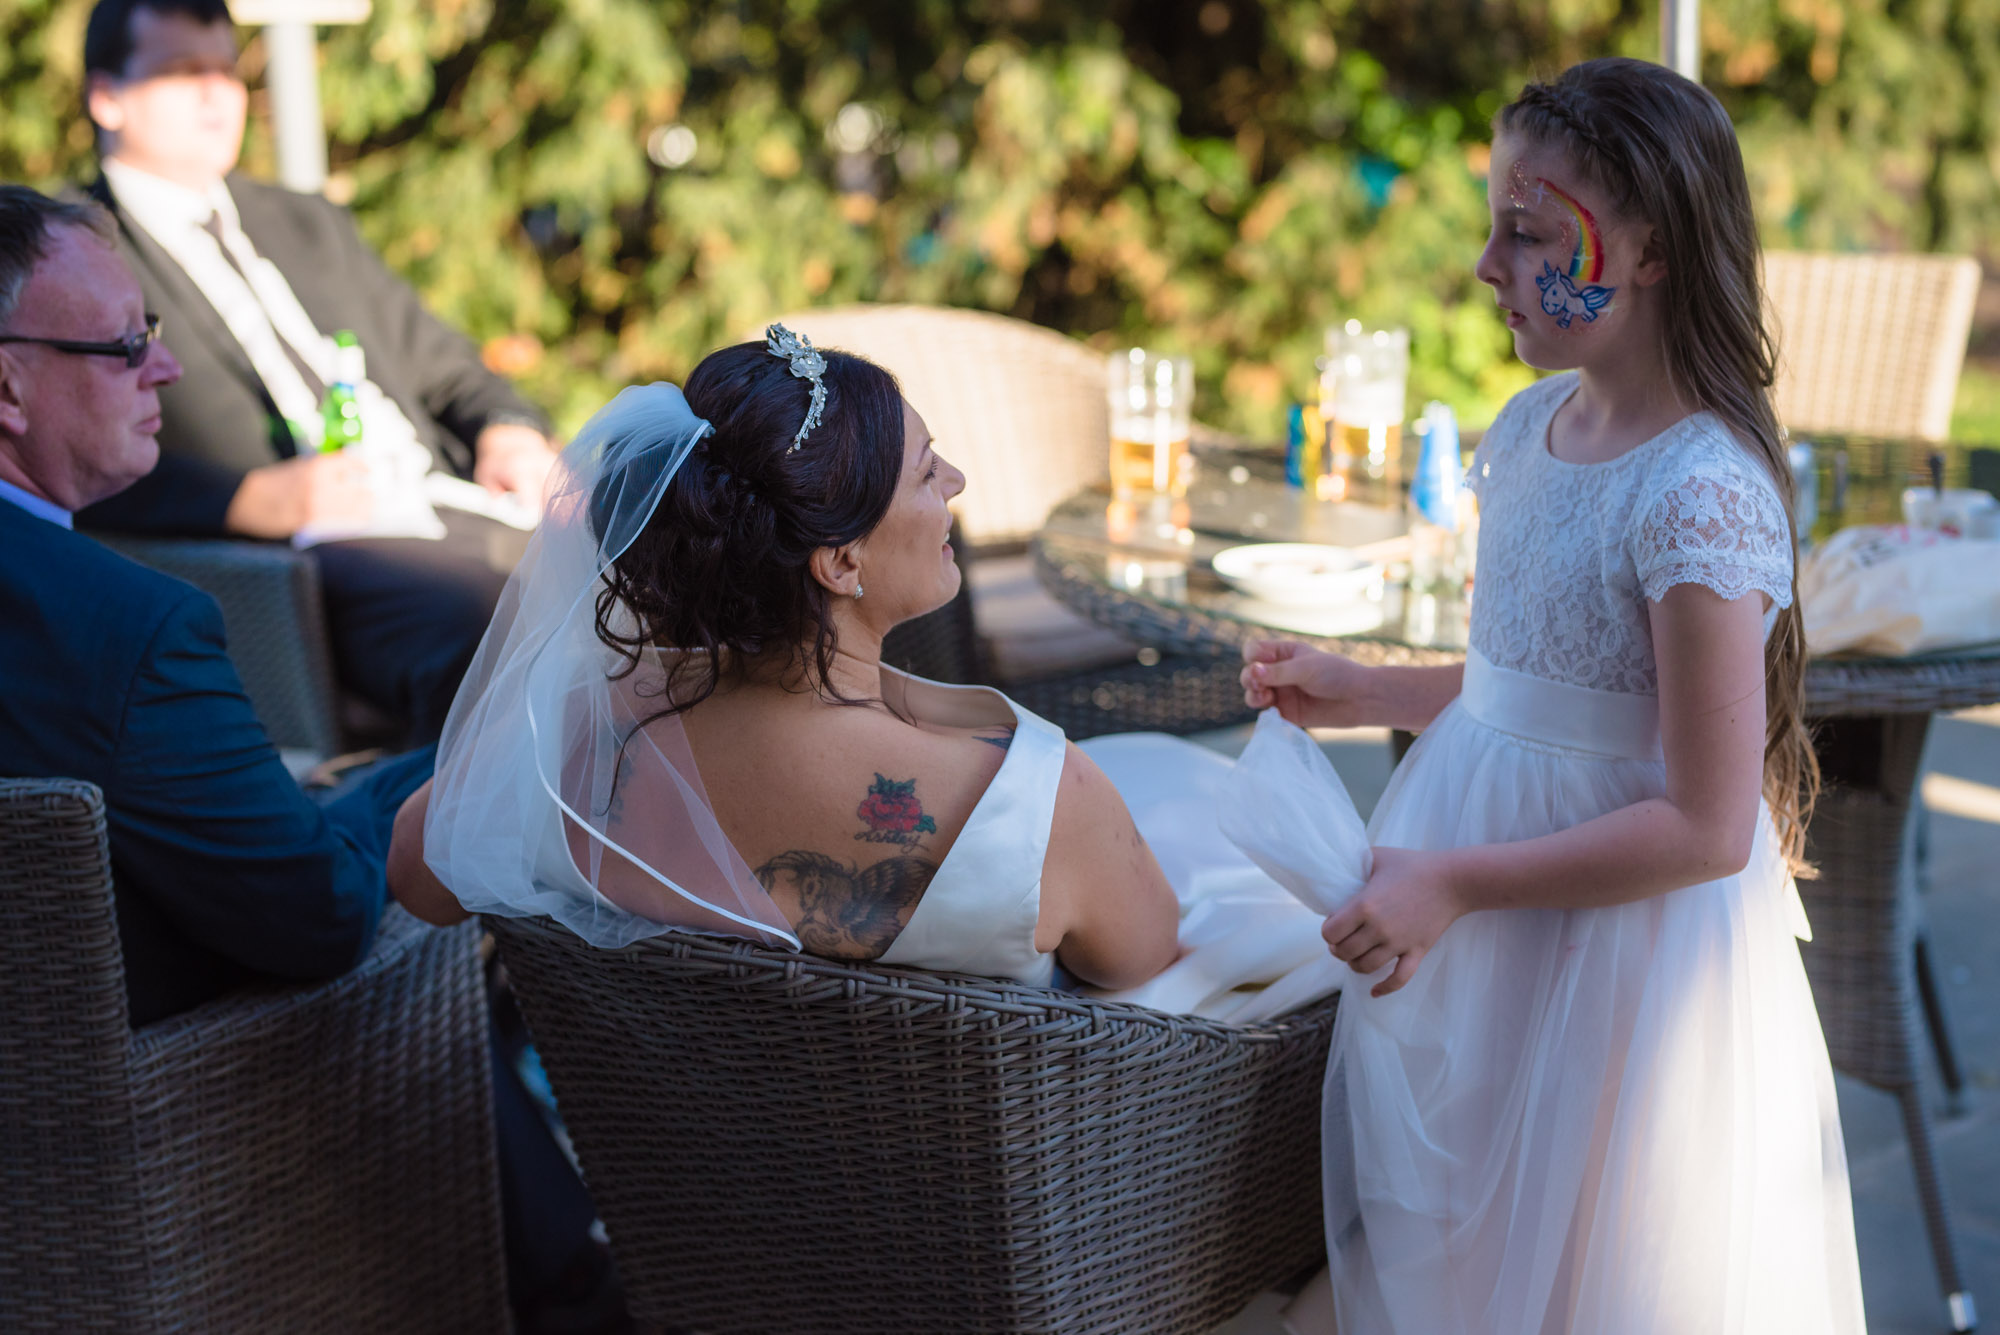 The Bride and bridesmaid share a moment